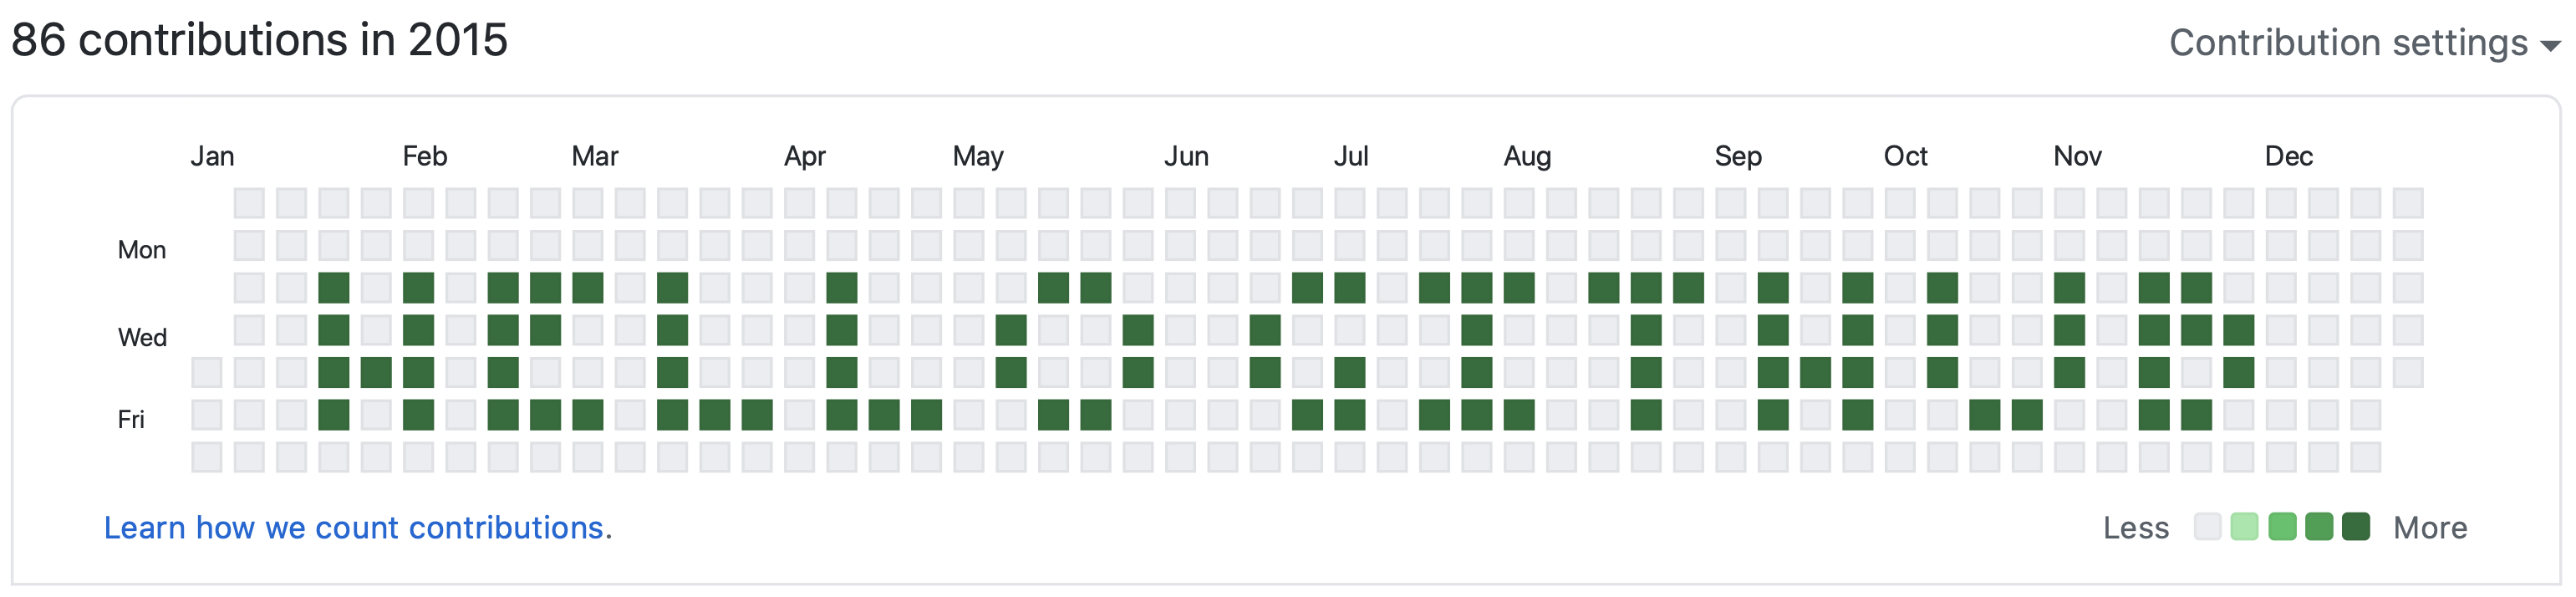 GitHub contribution heatmap with a commit pattern that spells out 'HELLO GITHUB' in capital letters